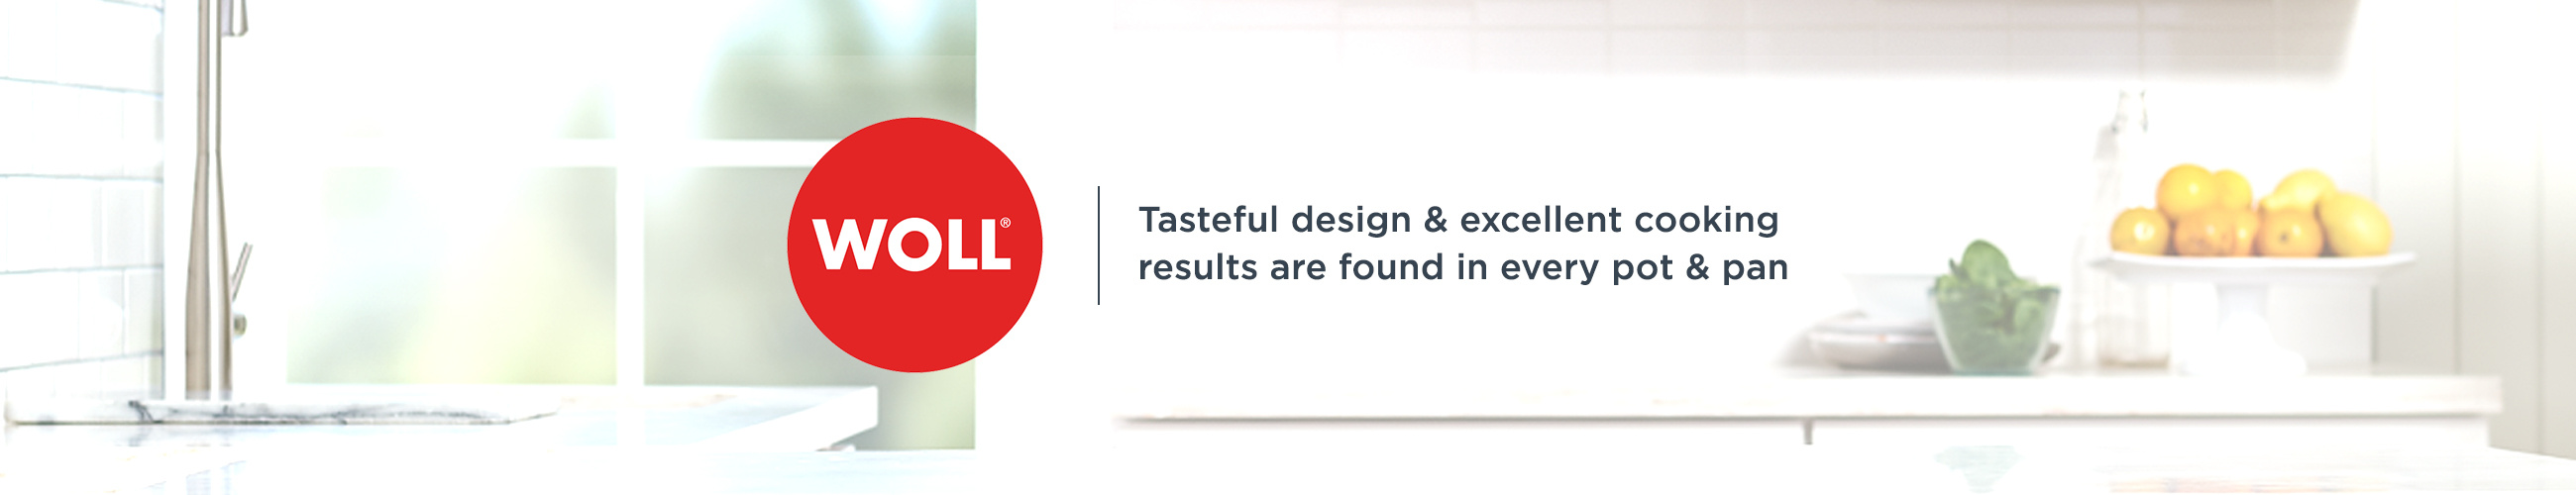 Woll,  Tasteful design & excellent cooking results are found in every pot & pan